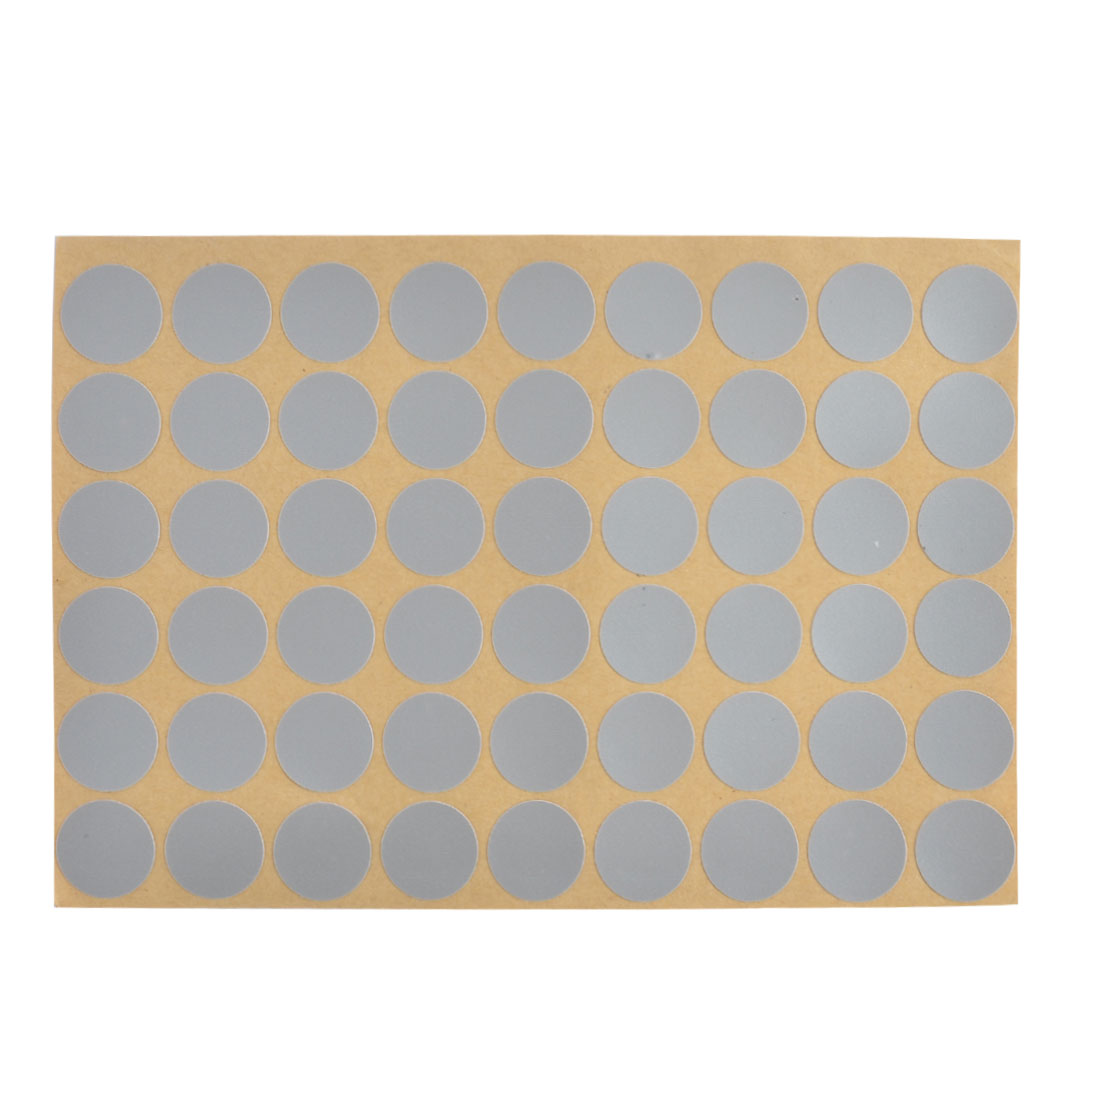 21mm Dia Furniture Self-adhesive Scrub Screw Hole Stickers Sheet Gray 54 in 1